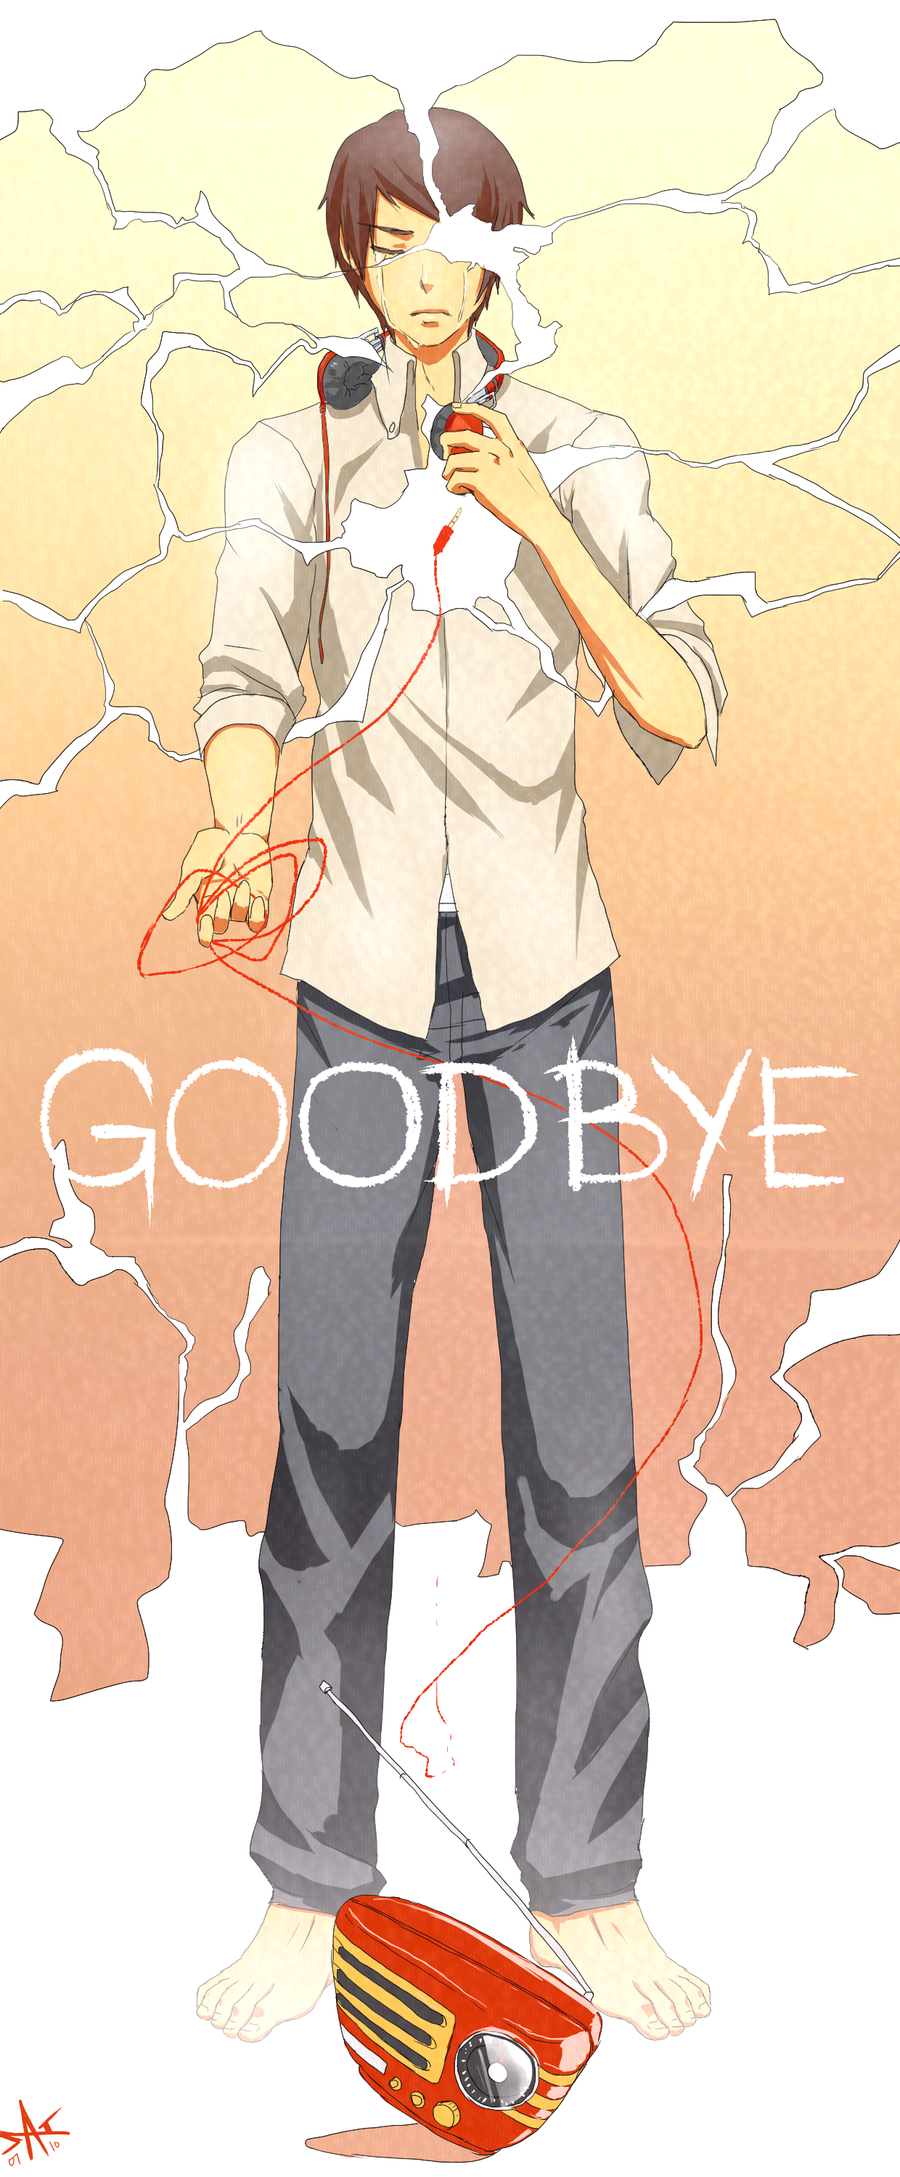 GOODBYE by radiostarkiller